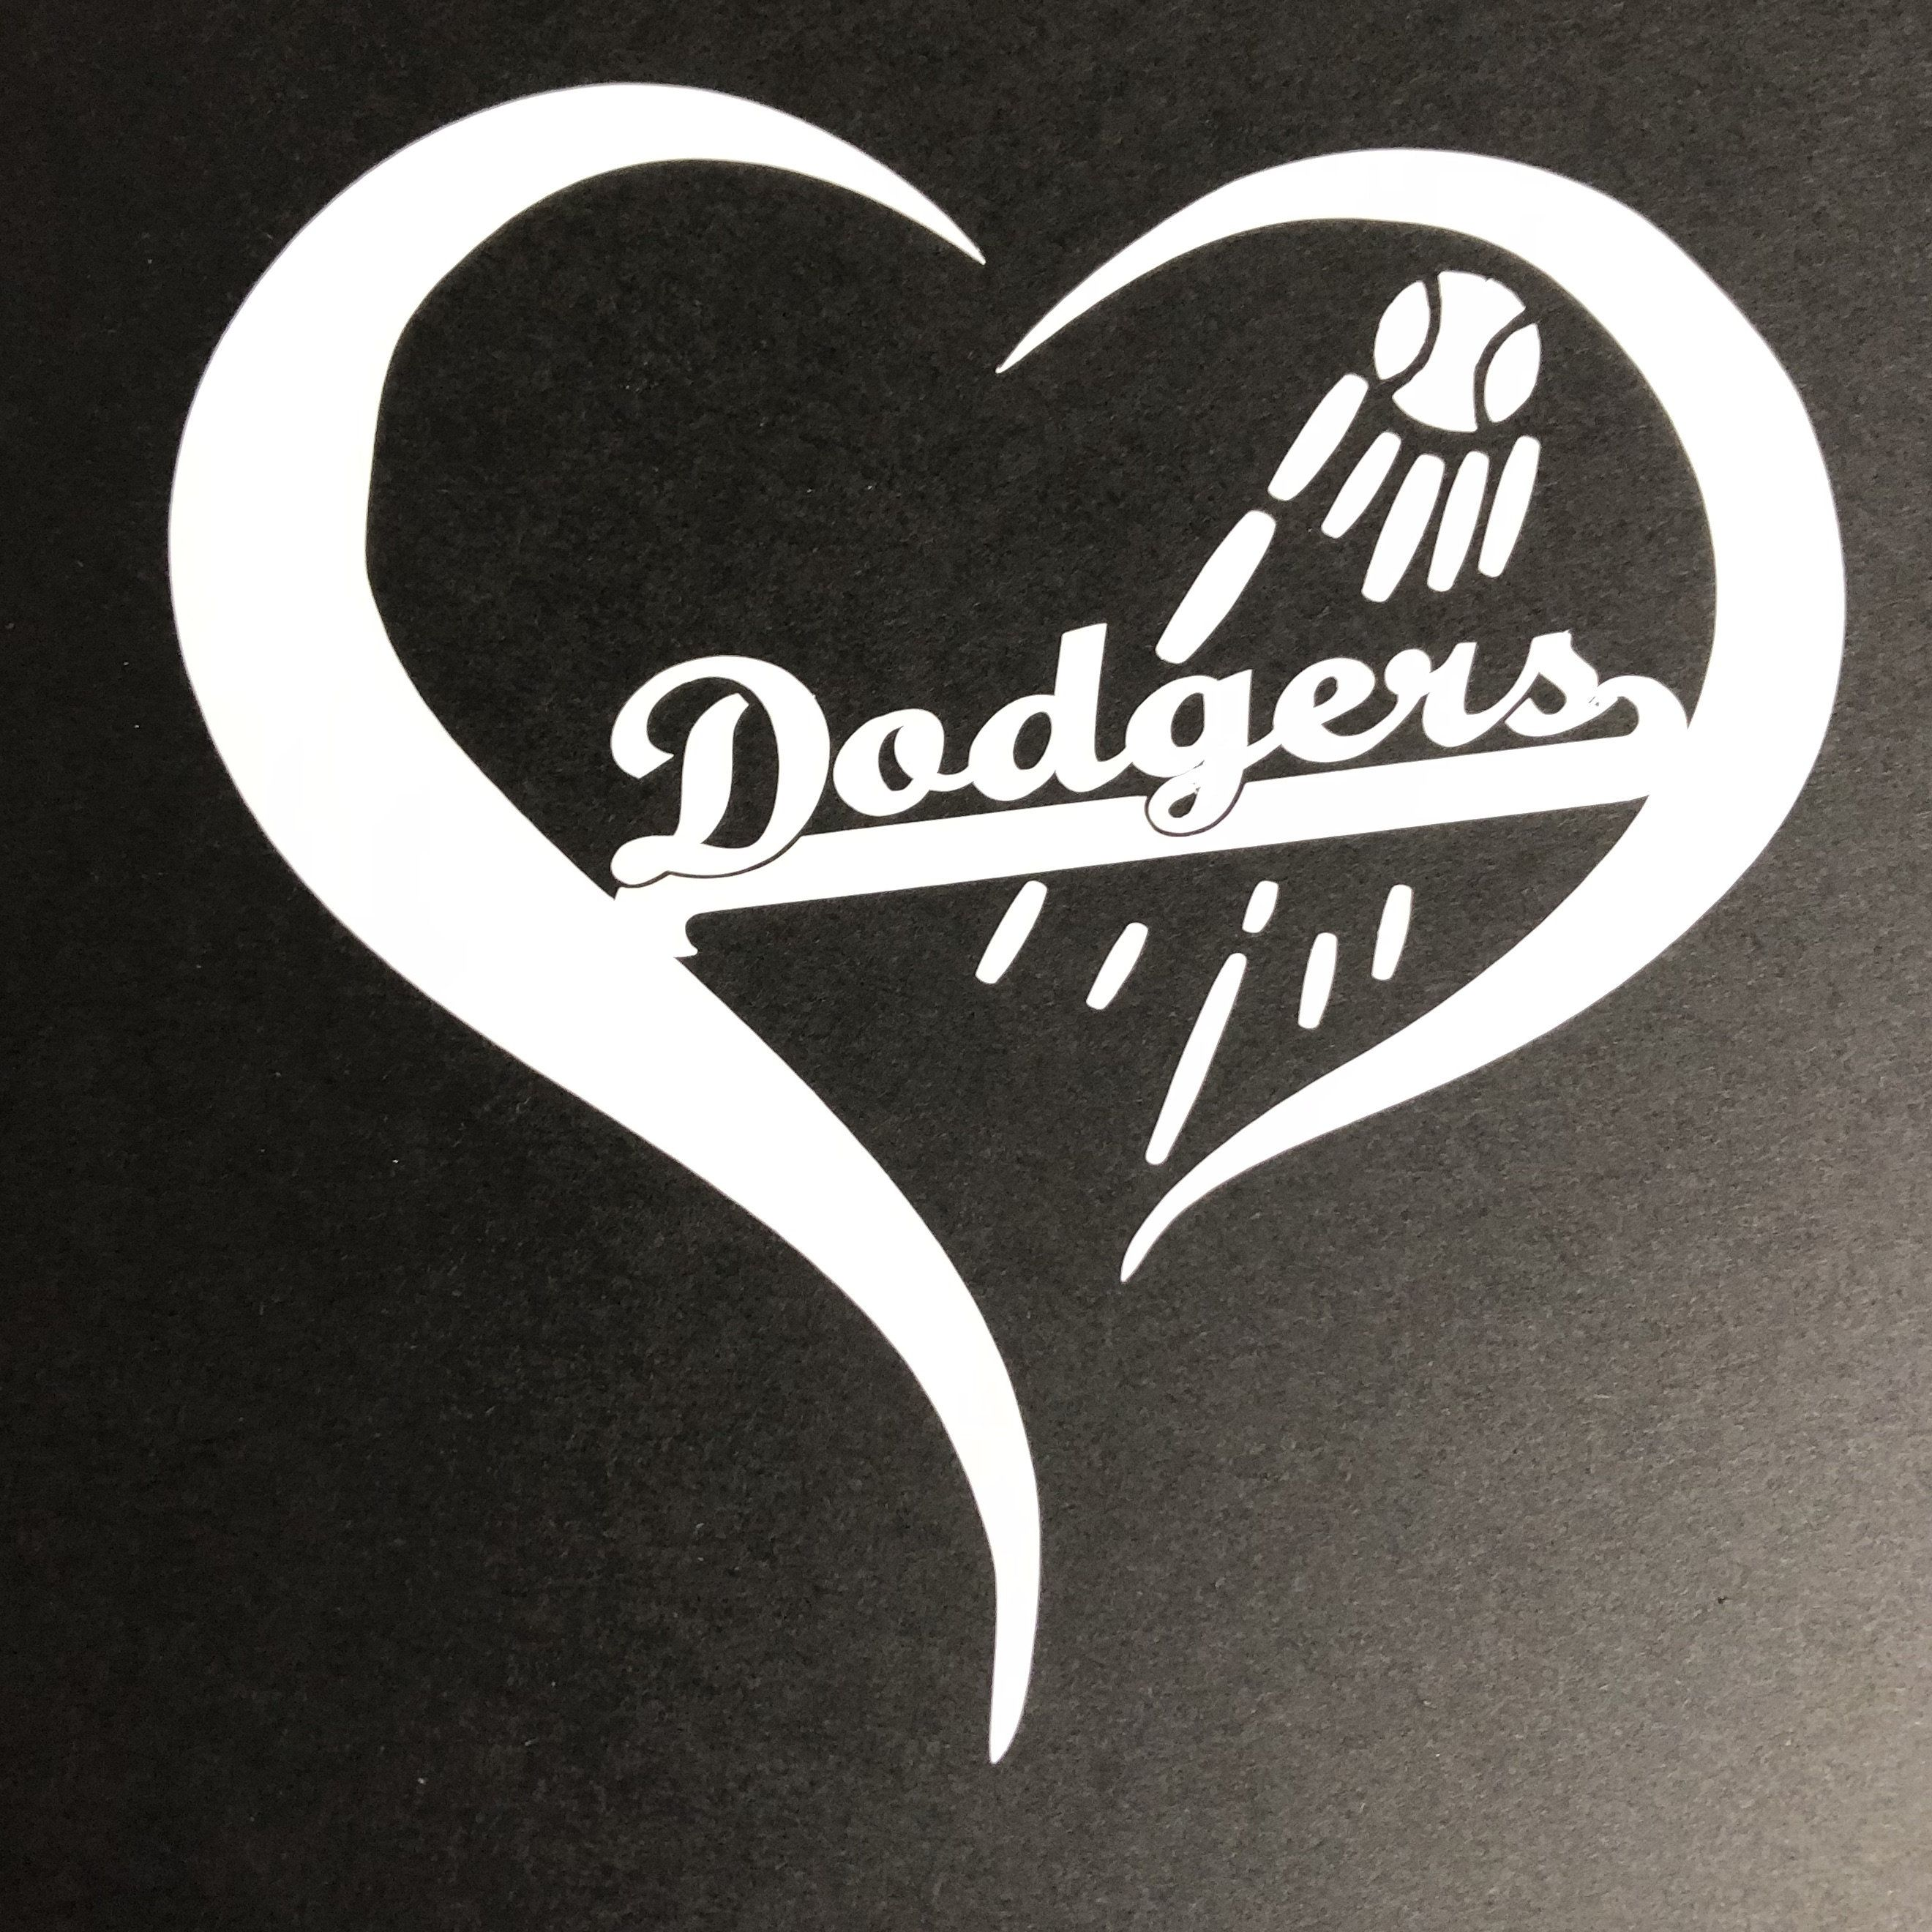 Los Angeles Dodgers Heart Decal Sticker For Hydroflask Mlb Baseball La California Heart Decals California Decal Hydroflask [ 2640 x 2640 Pixel ]